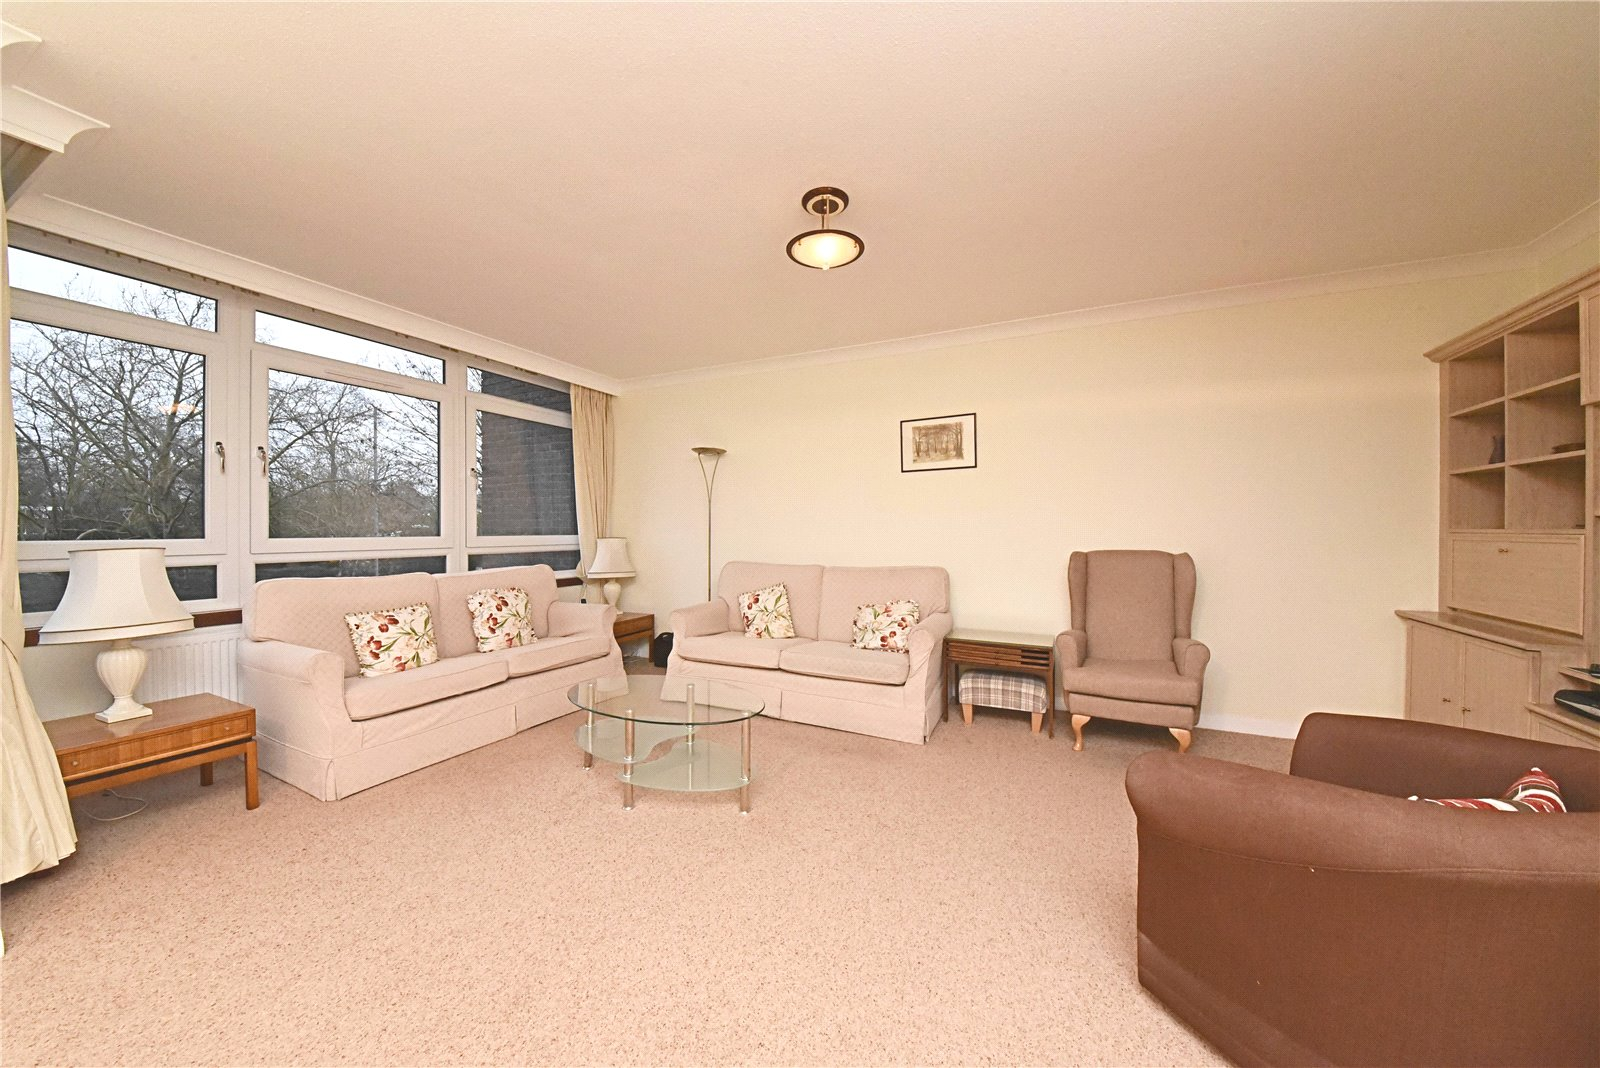 2 bed apartment for sale in Hendon, NW4 1RB 4